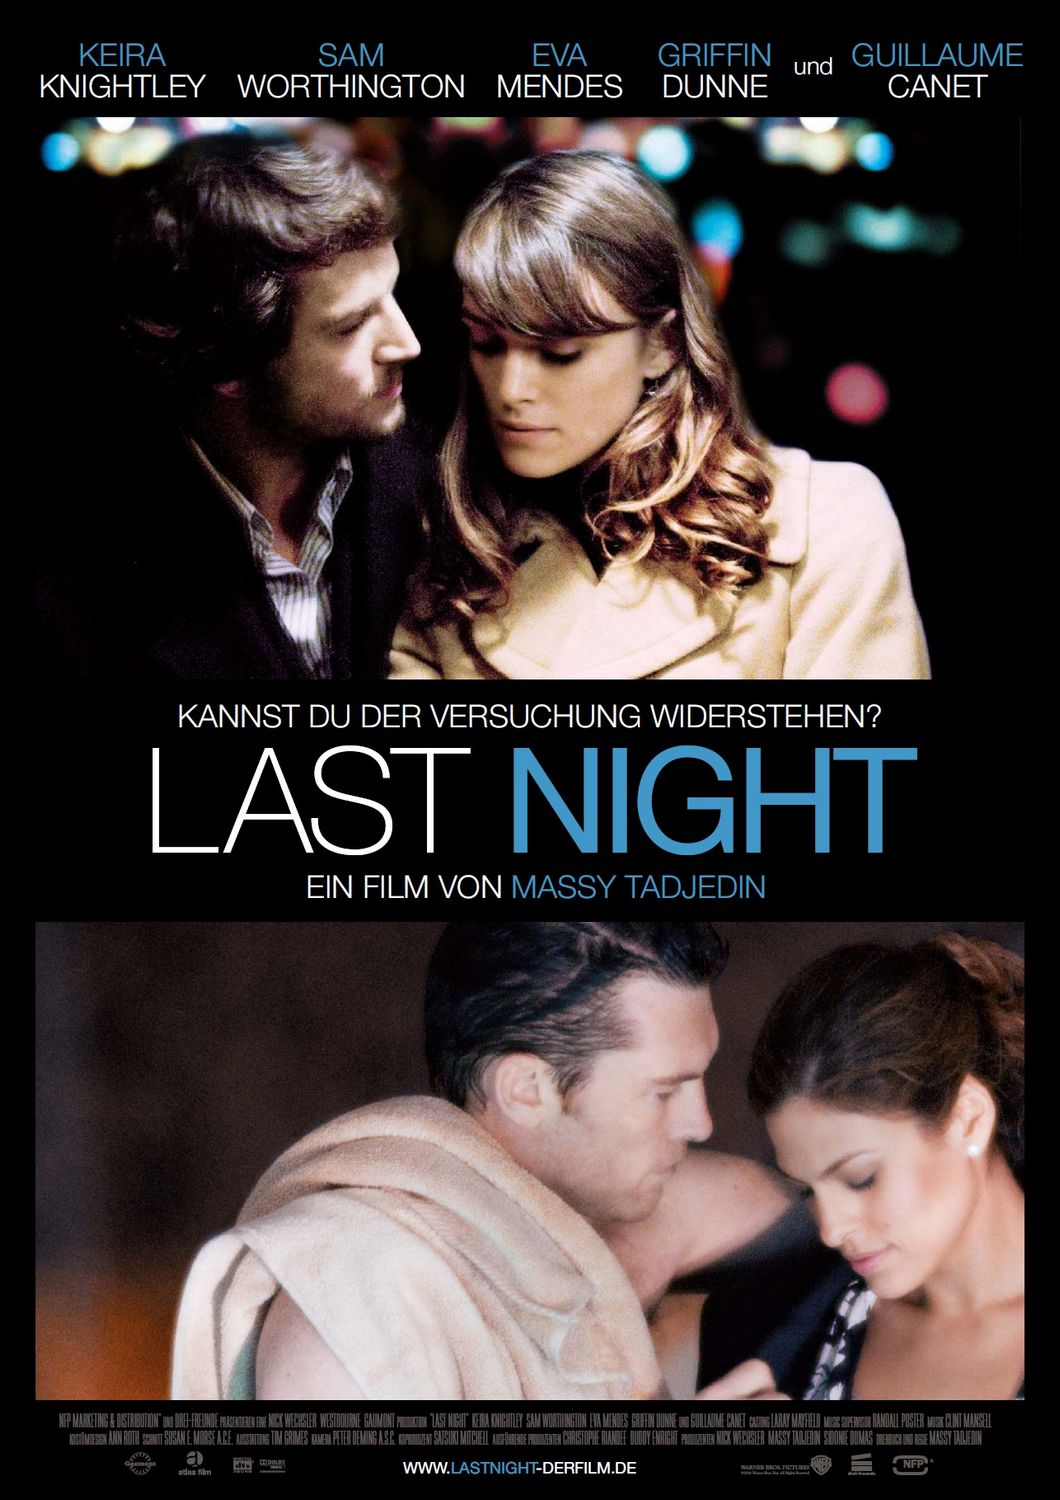 The Last Night movie